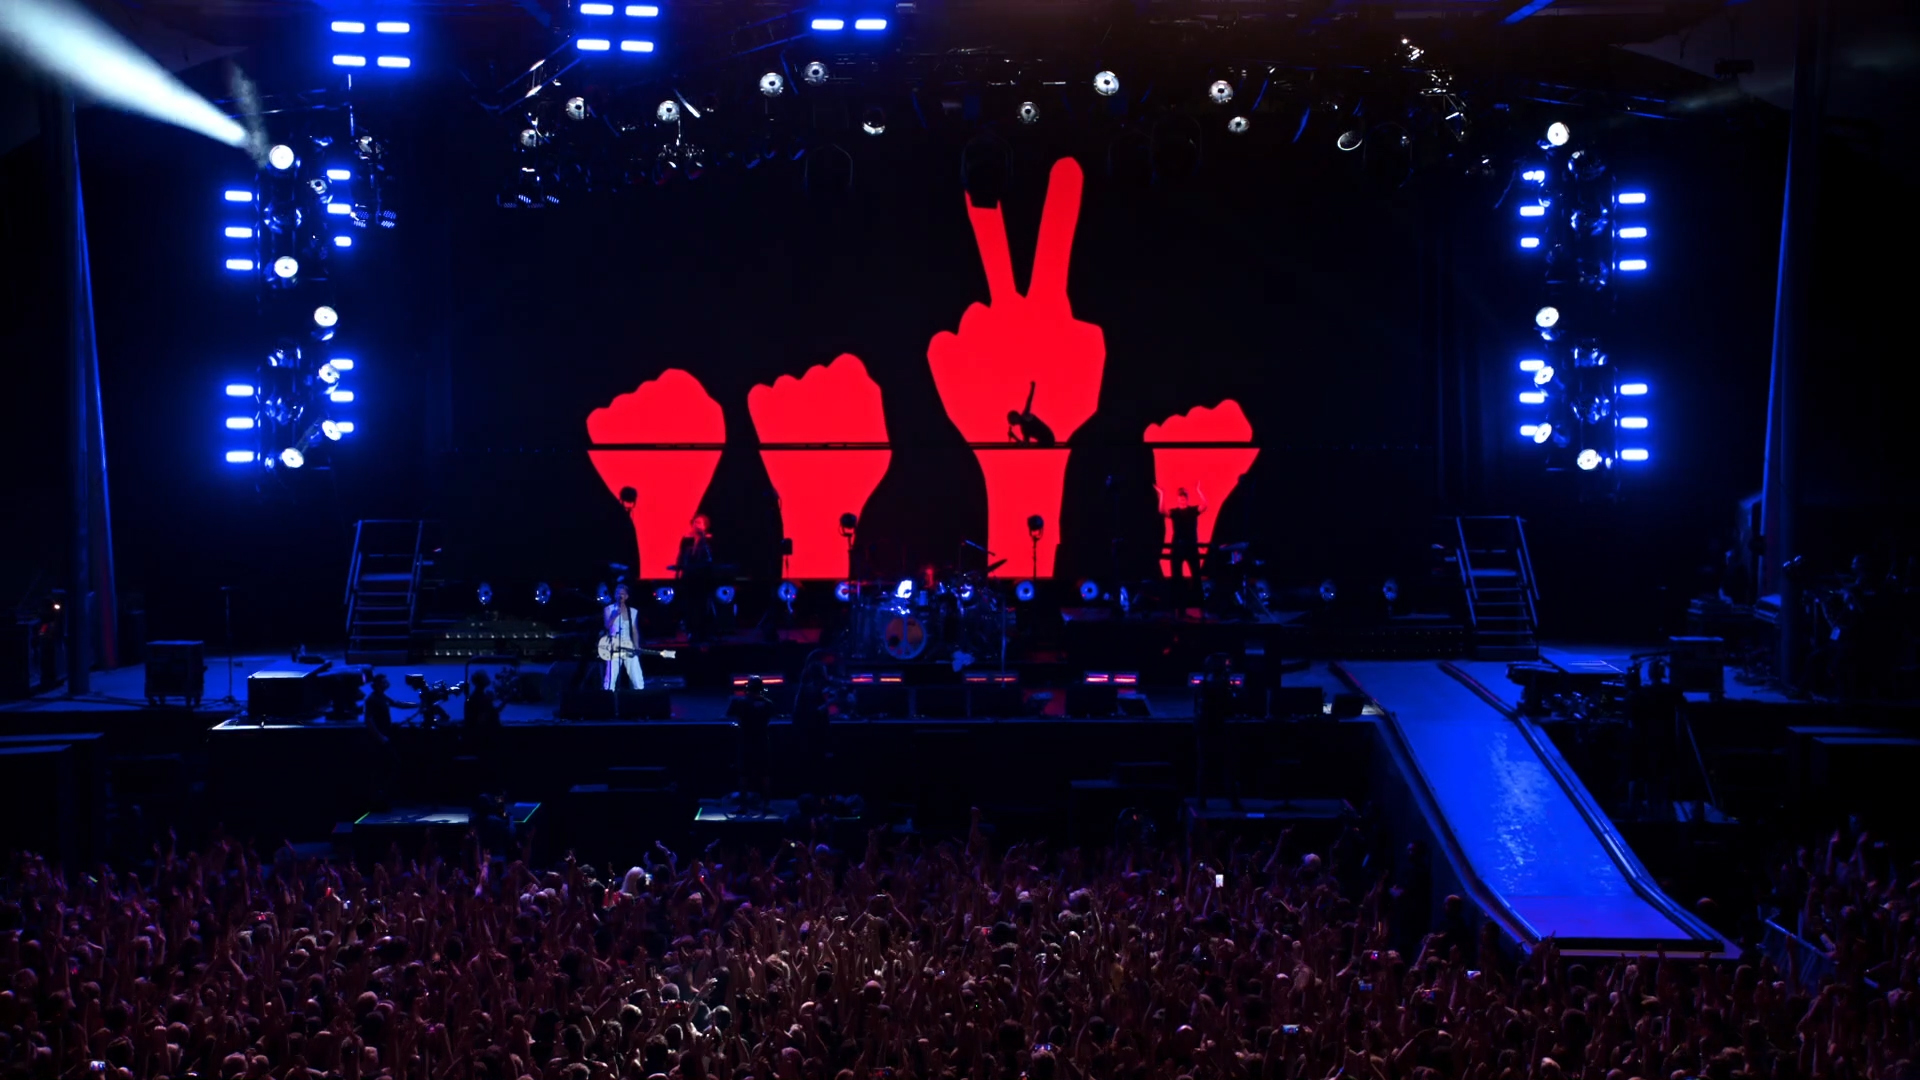 DEPECHE MODE SPIRITS IN THE FOREST_IMAGE 1